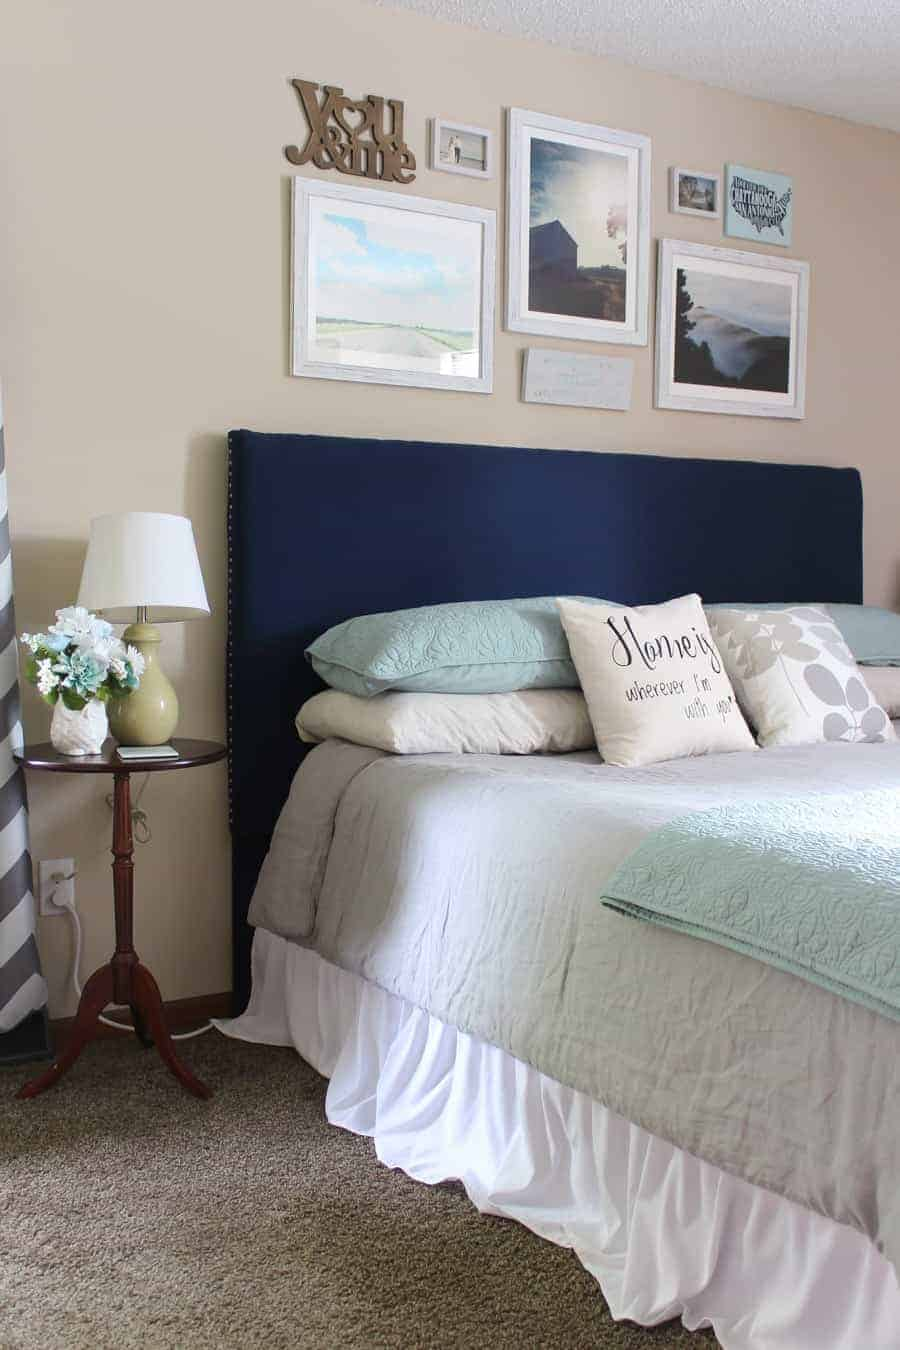 Tan walls in bedroom with navy headboard and gallery wall hanging for over the bed decor